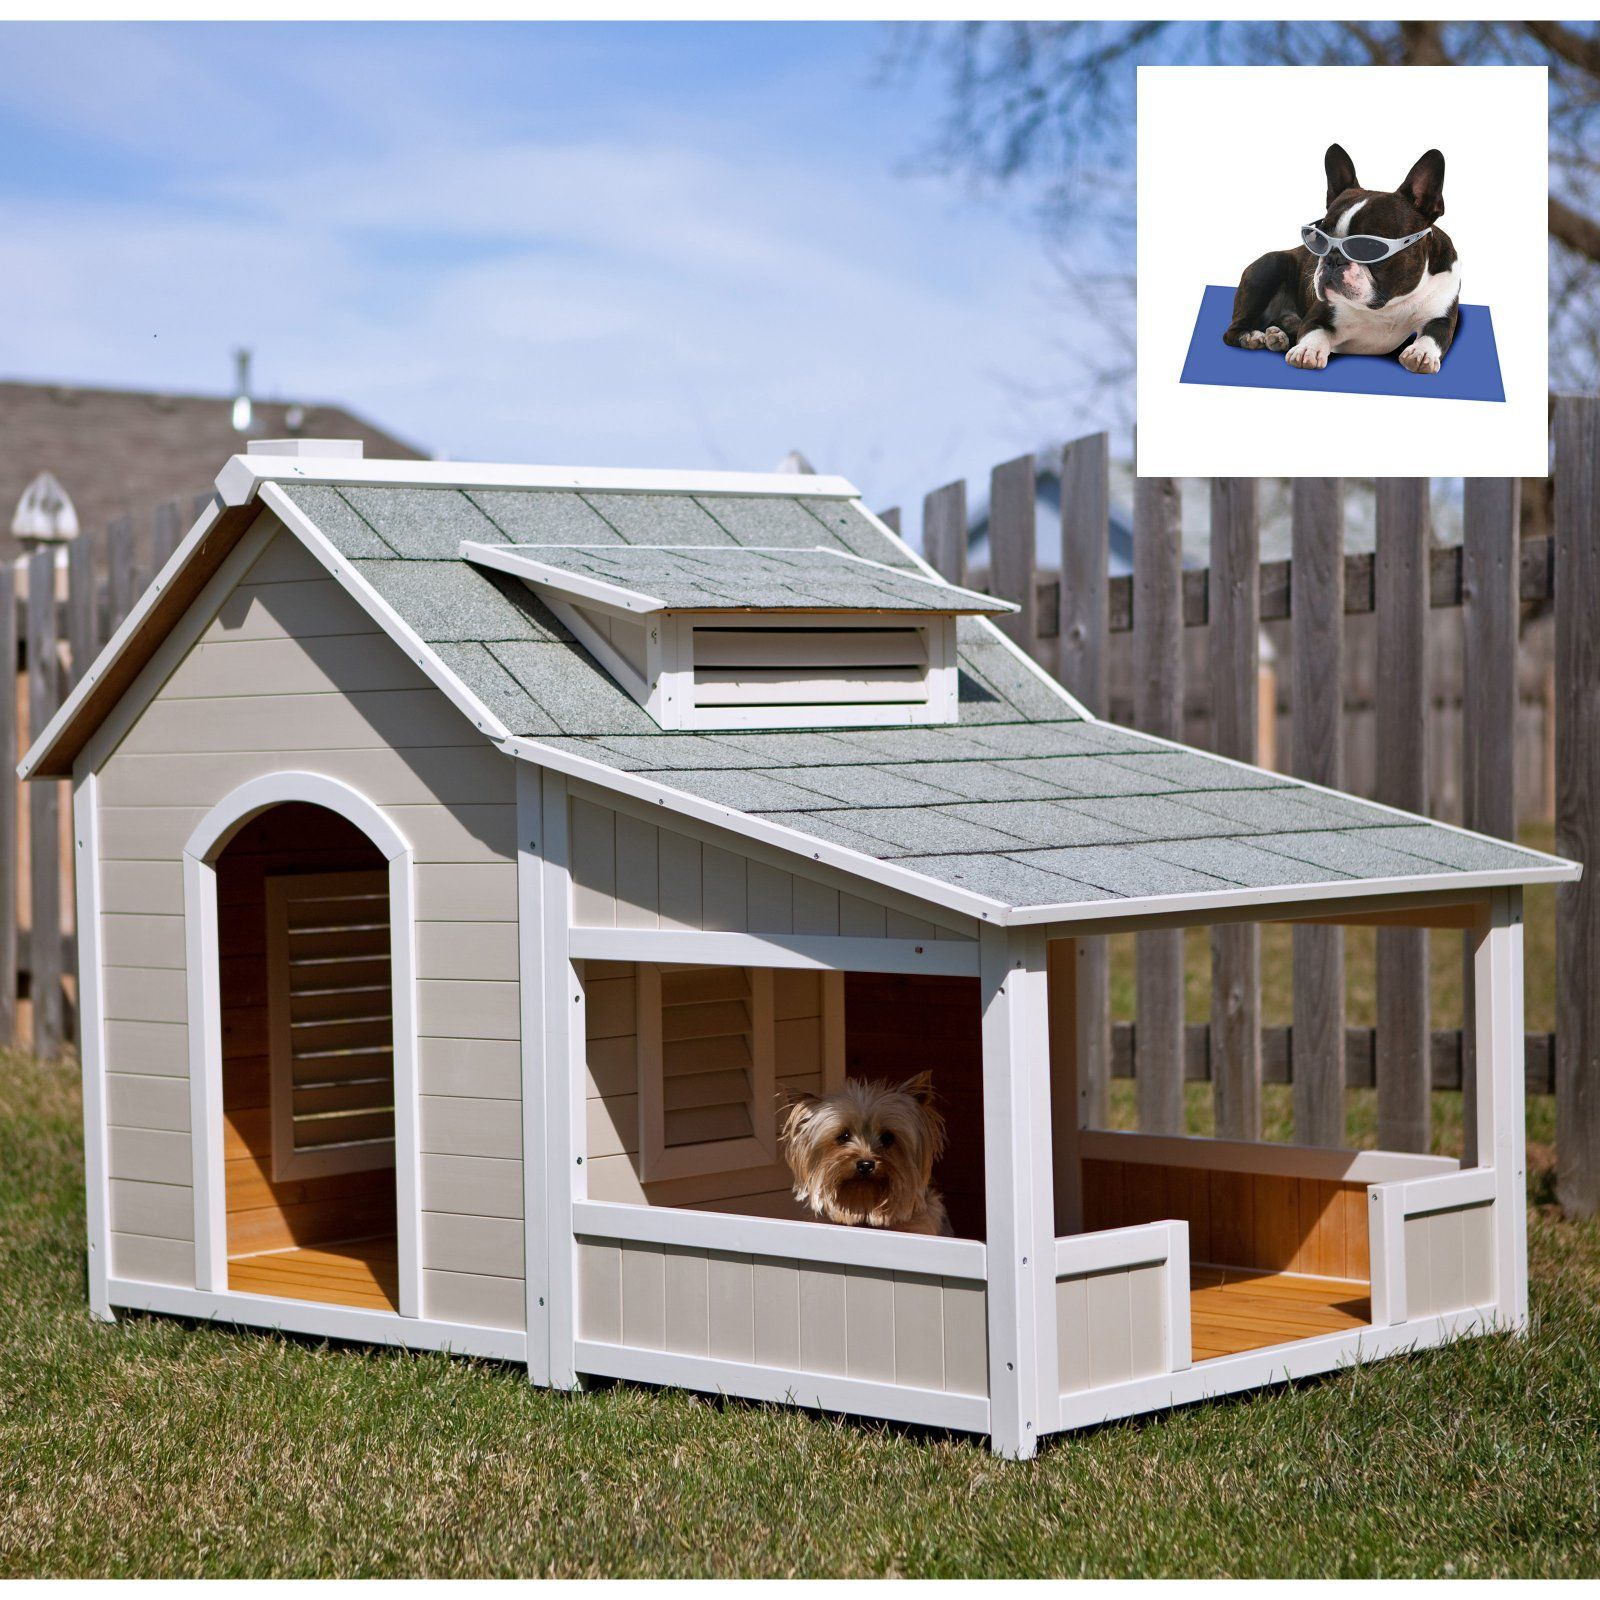 Our Favorite Over The Top Dog Houses Dog House With Porch Wood